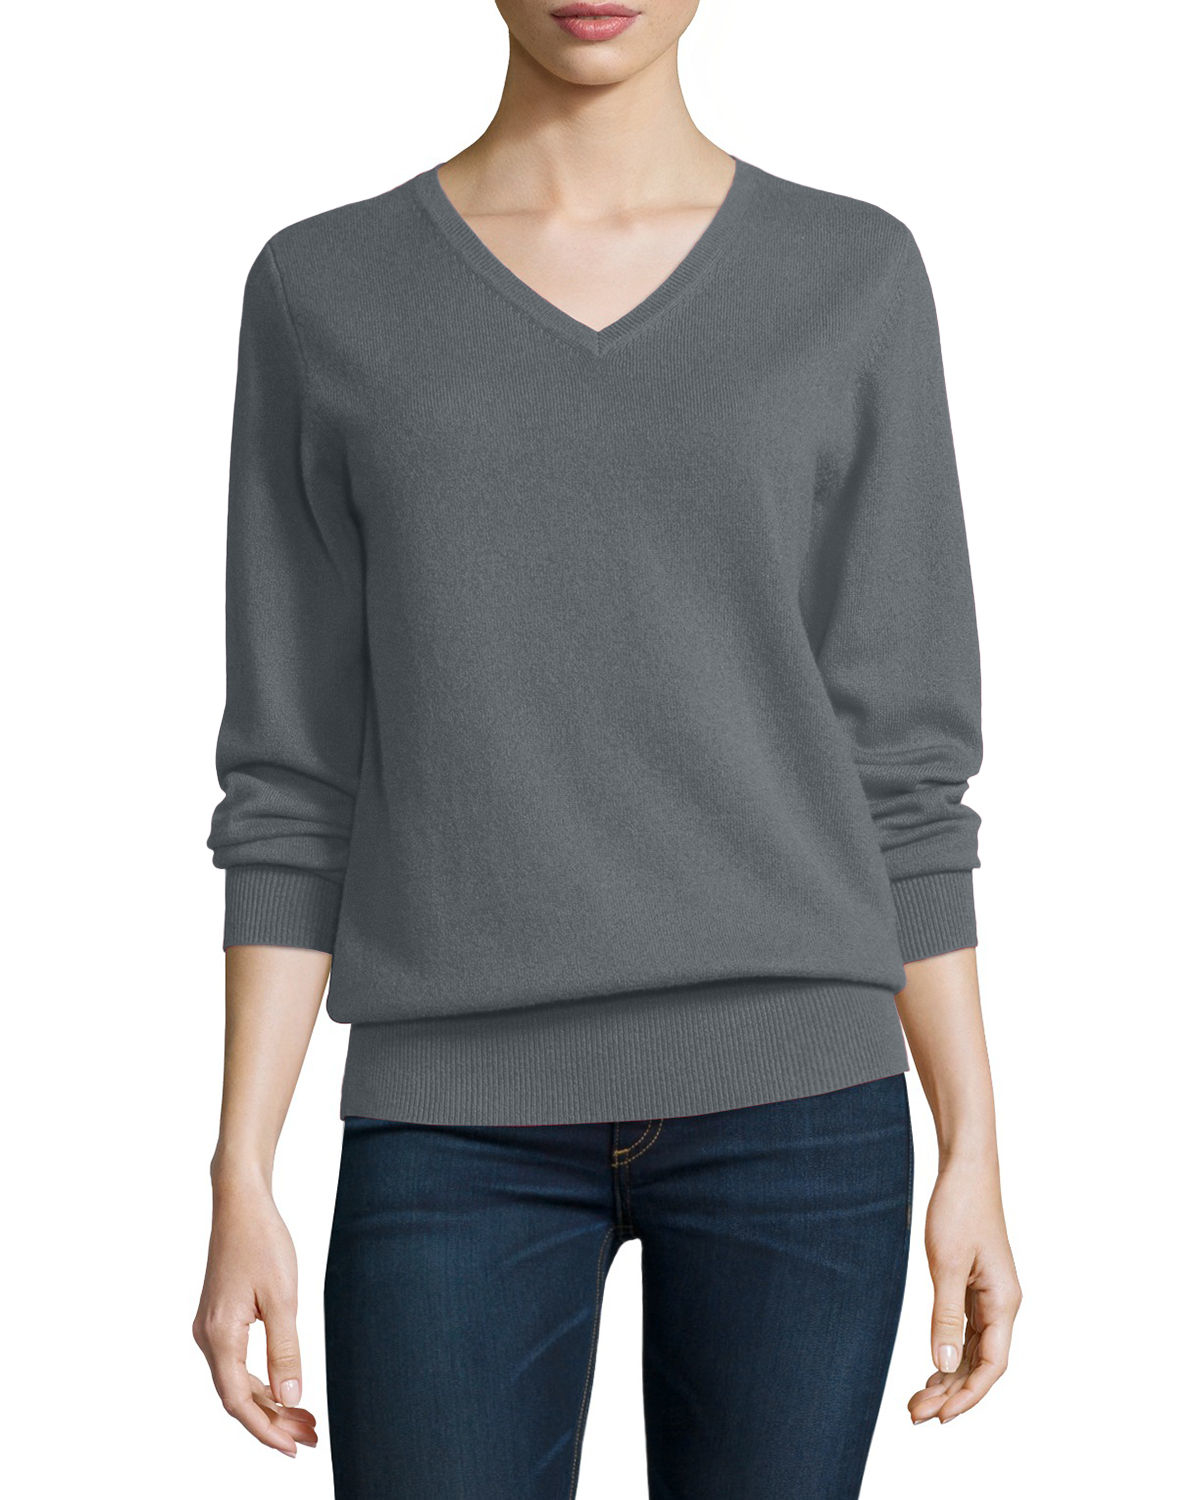 Neiman marcus long sleeve v neck relaxed fit cashmere sweater in gray